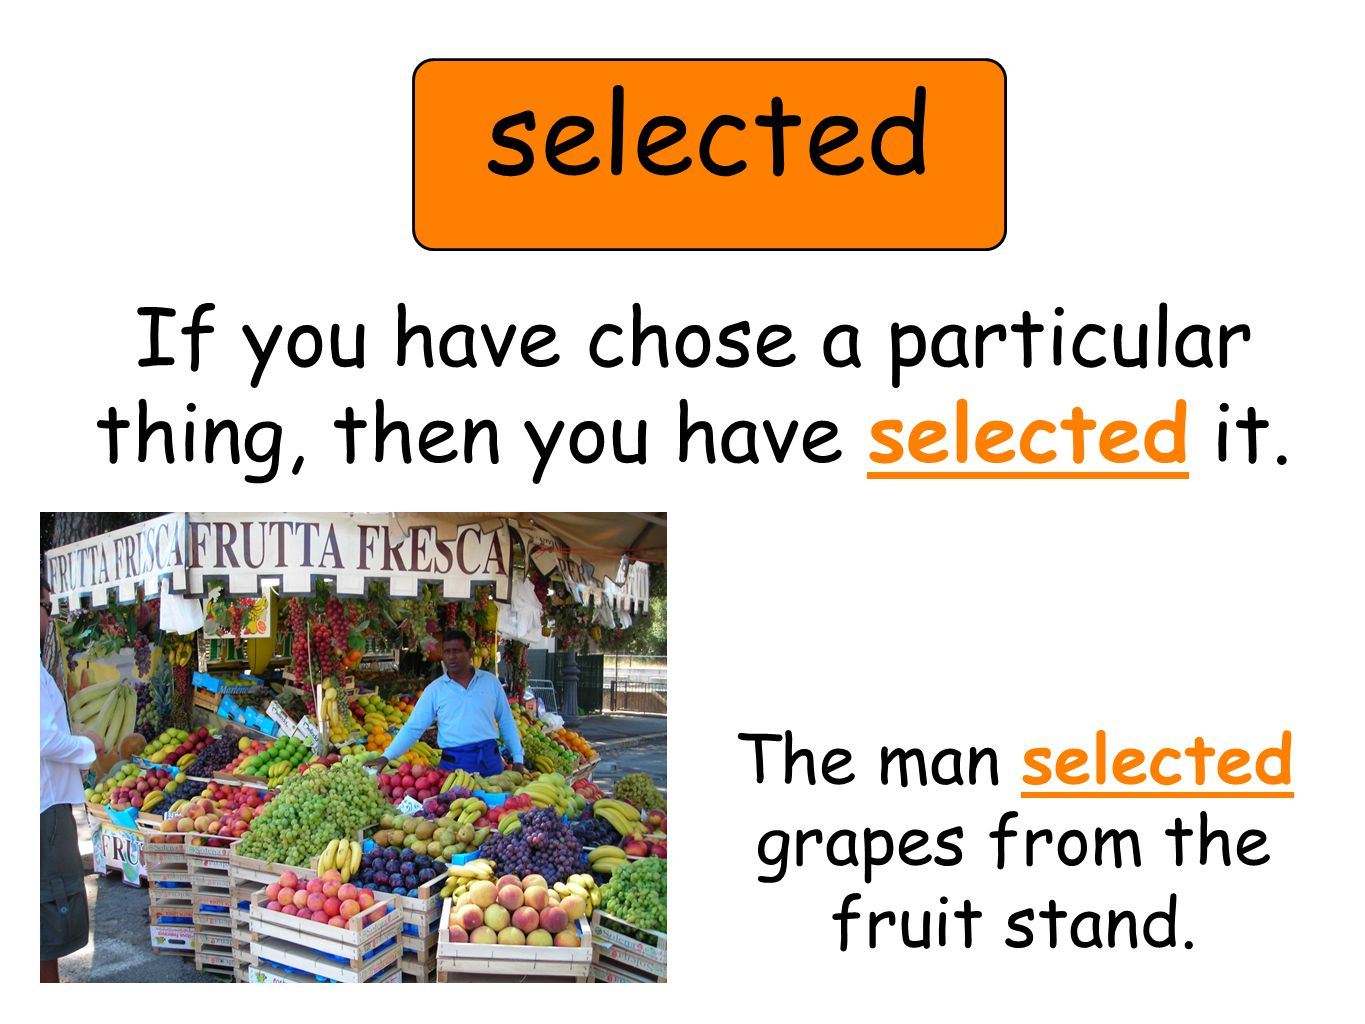 selected If you have chose a particular thing, then you have selected it. The man selected grapes from the fruit stand.